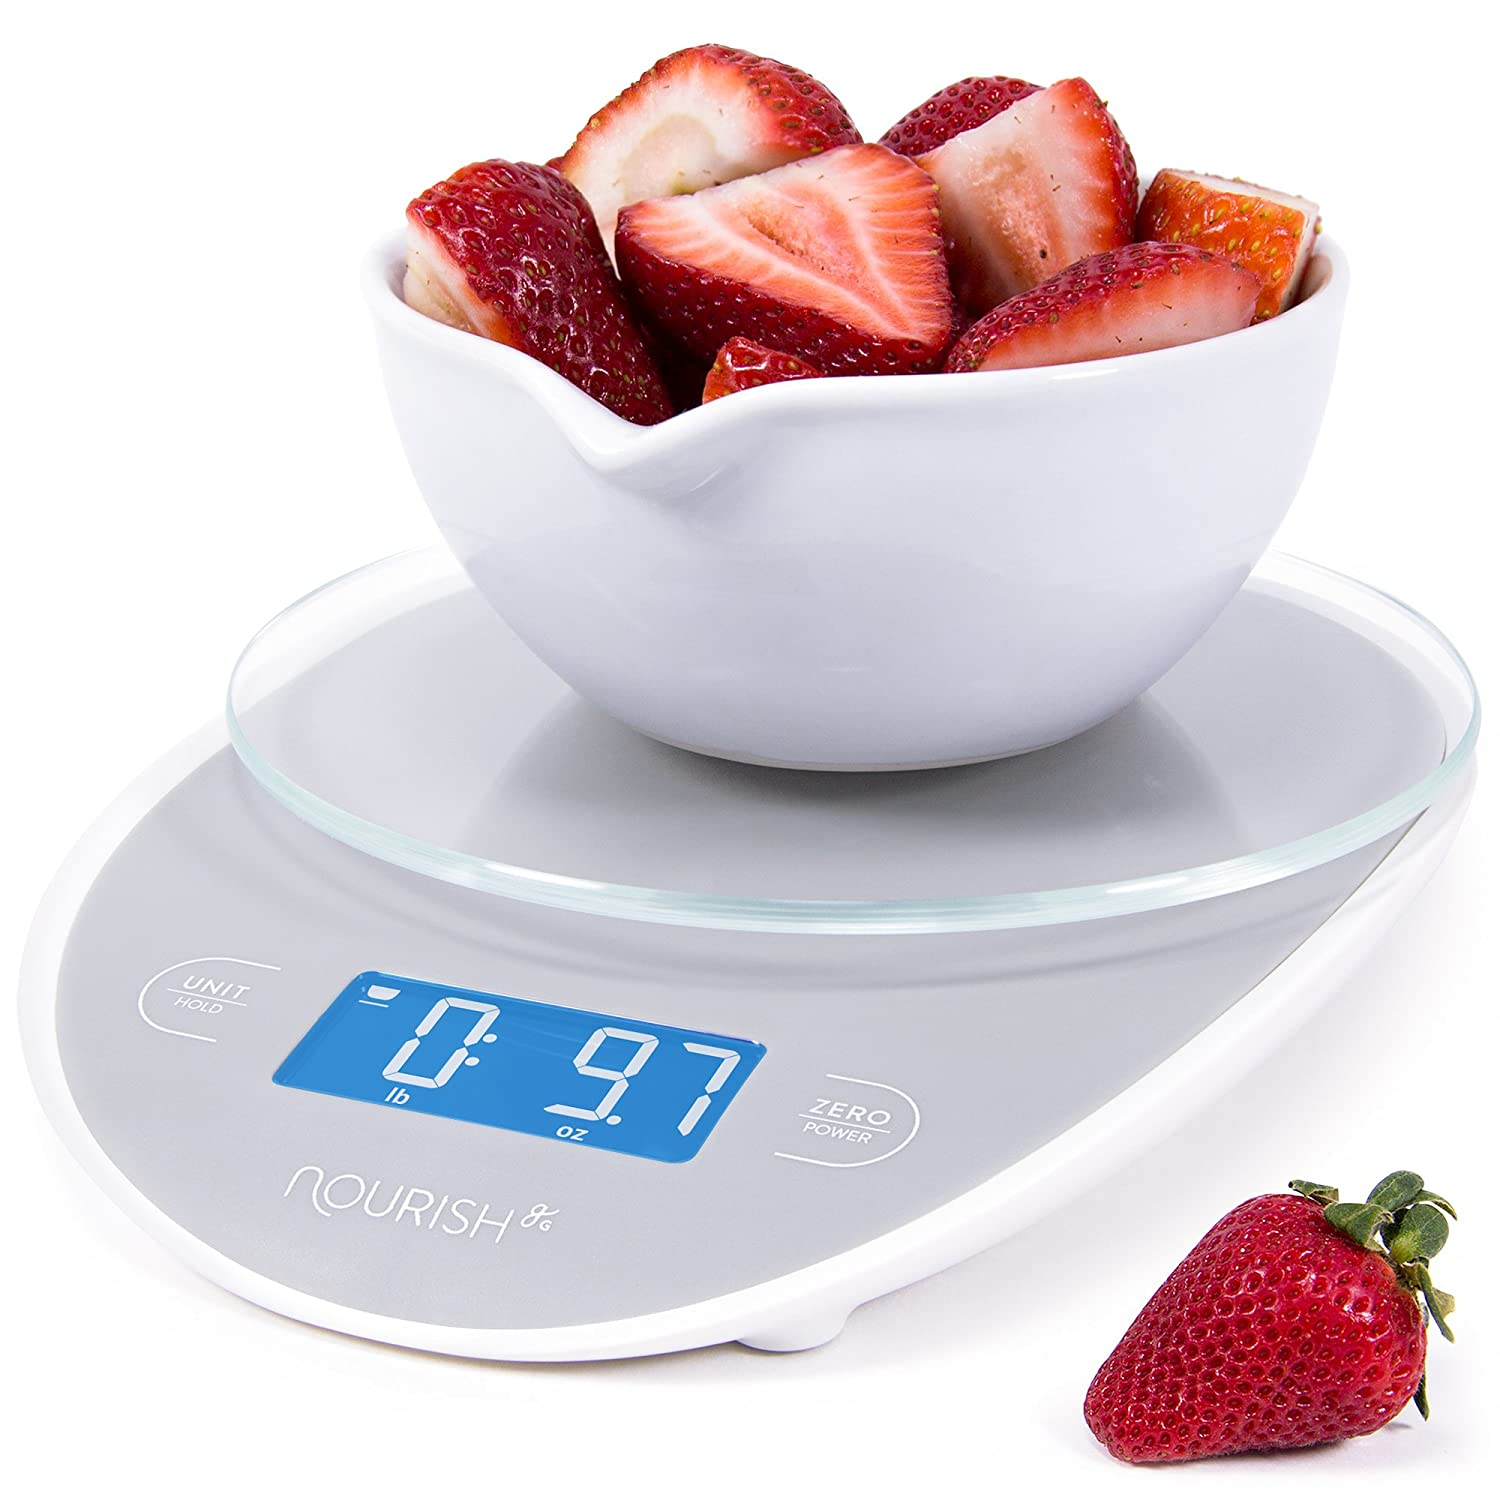 Nourish High-Accuracy Digital Food Coffee Scale. Weight in 0.5 grams, oz, ml. Large Single Sensor Glass Top, Precision Kitchen Measuring. Backlit Display. Food Scale / Kitchen Scale / Coffee Scale Greater Goods 0475P